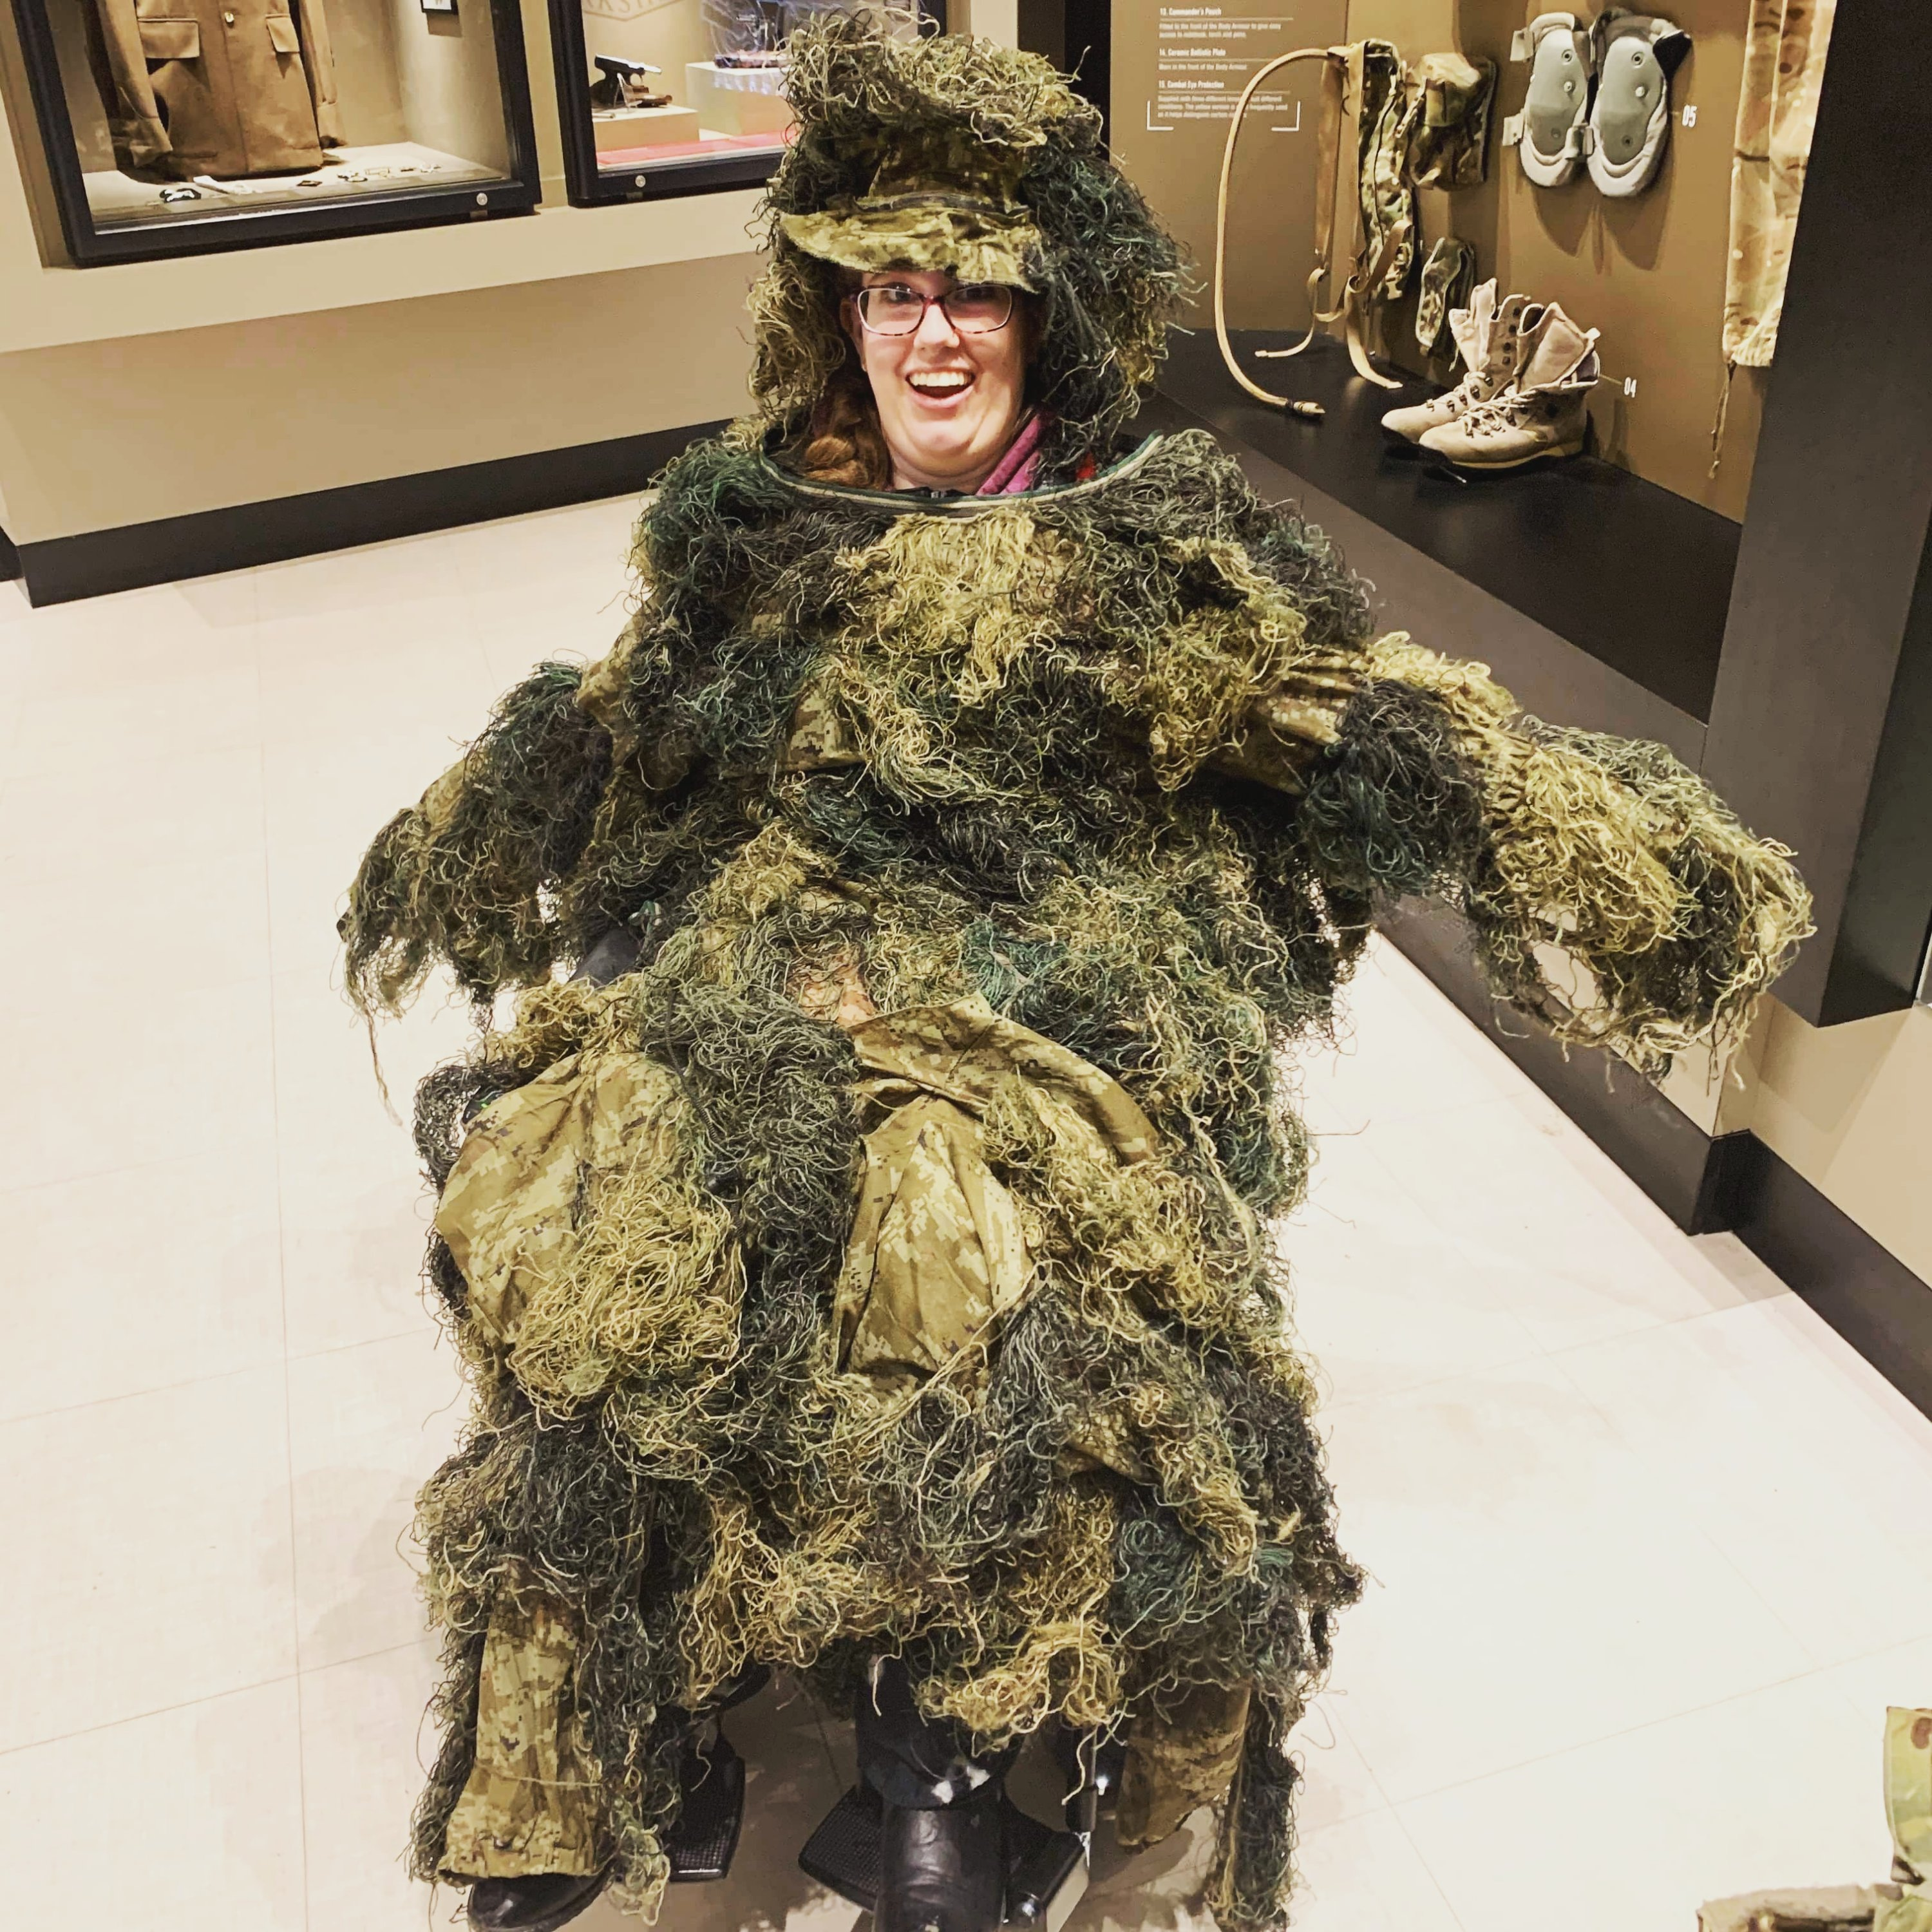 Sat in the York Army Museum in my wheelchair, covered in various military stealth clothes. I look ridiculous.